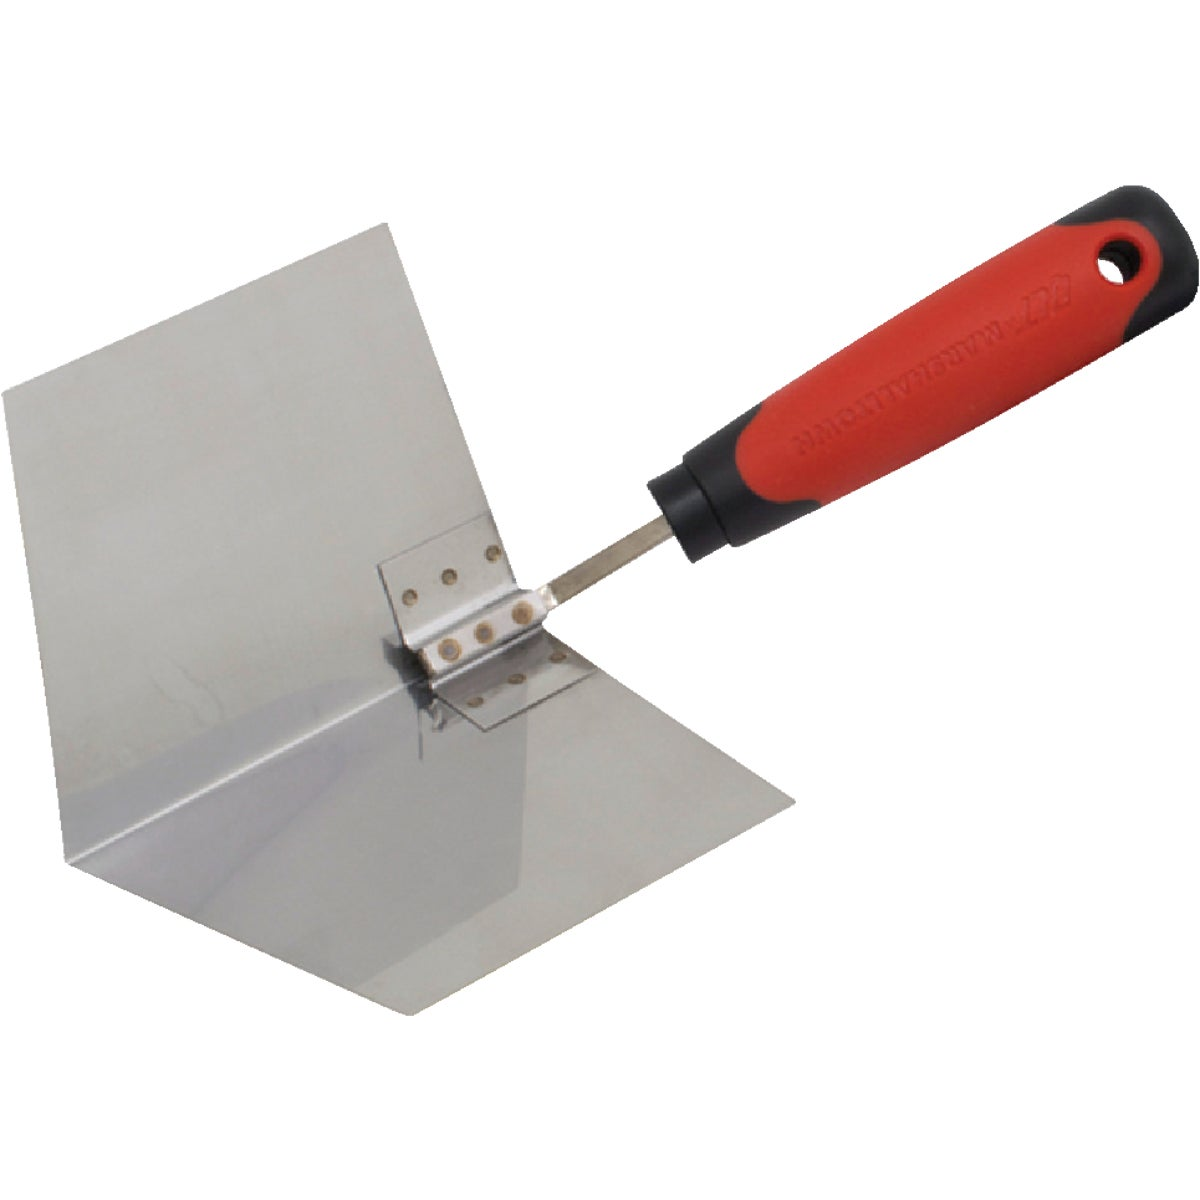 "CT911 4"" IS CRNR TROWEL - 19285 by Marshalltown Trowel"